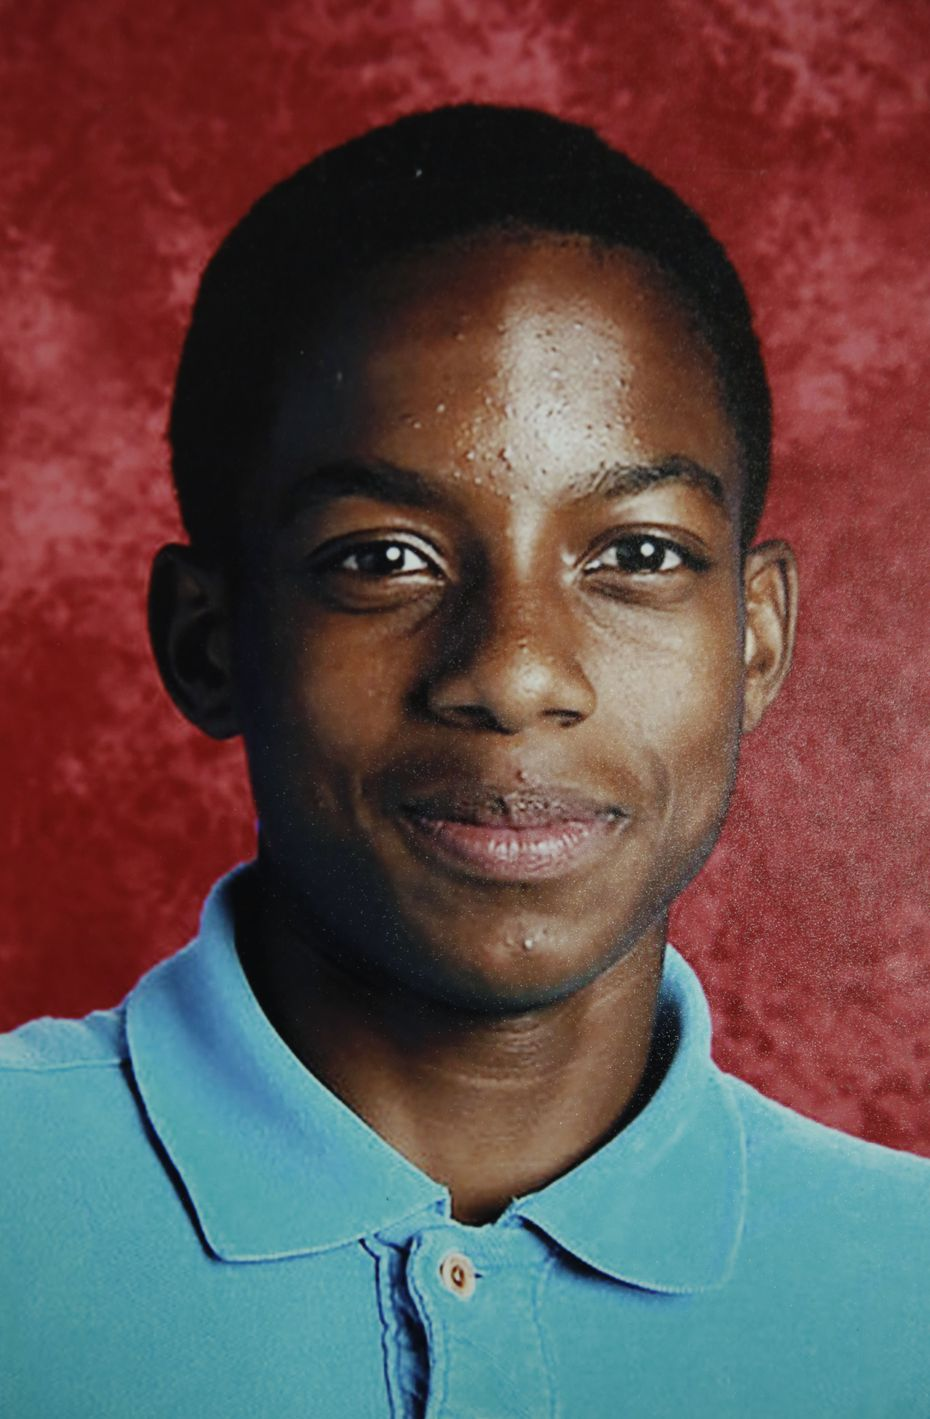 An image of Jordan Edwards as evidence from the state vs. Roy Oliver trial. (Photo courtesy of Dallas County)